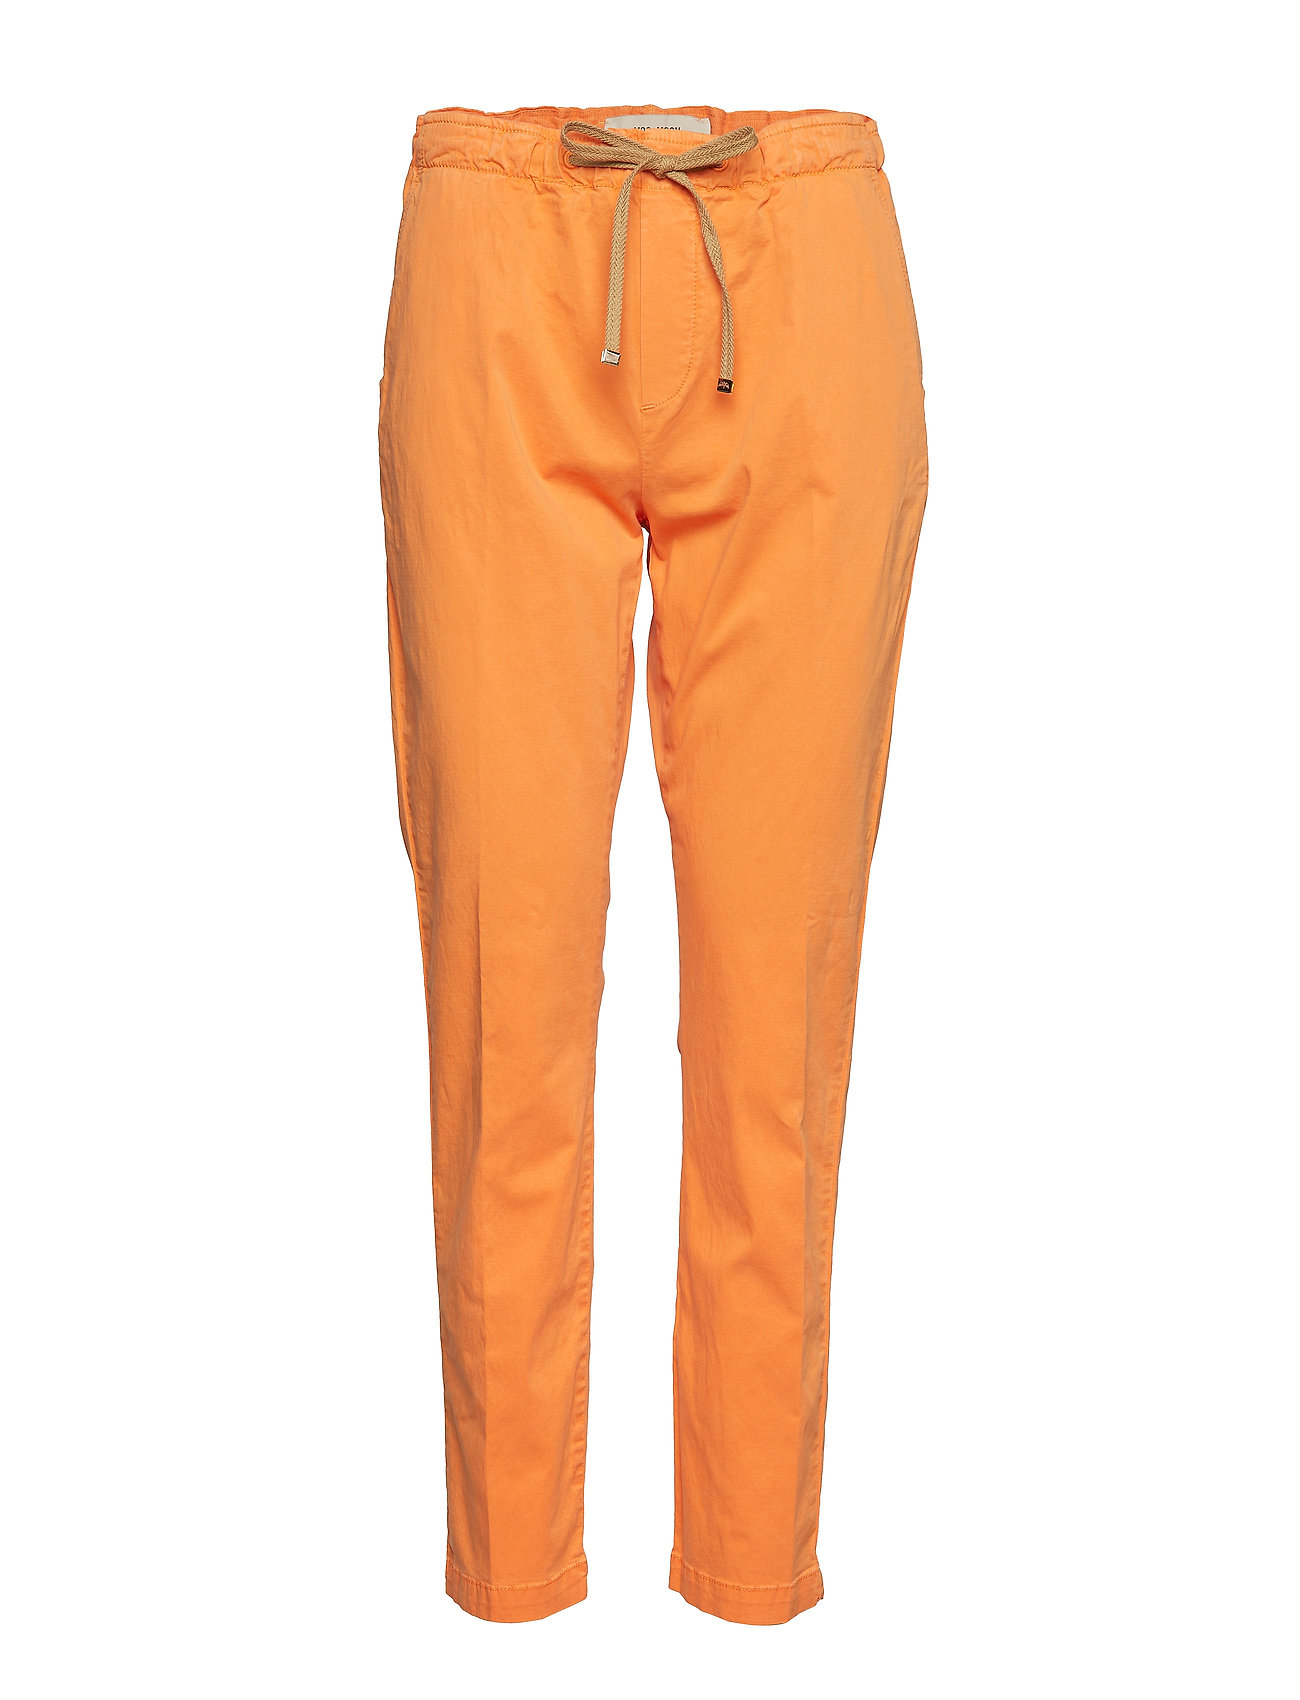 Patton OrangeMos Nature Pantsun Patton Pantsun Patton OrangeMos Mosh Mosh Nature eWEHYbD92I